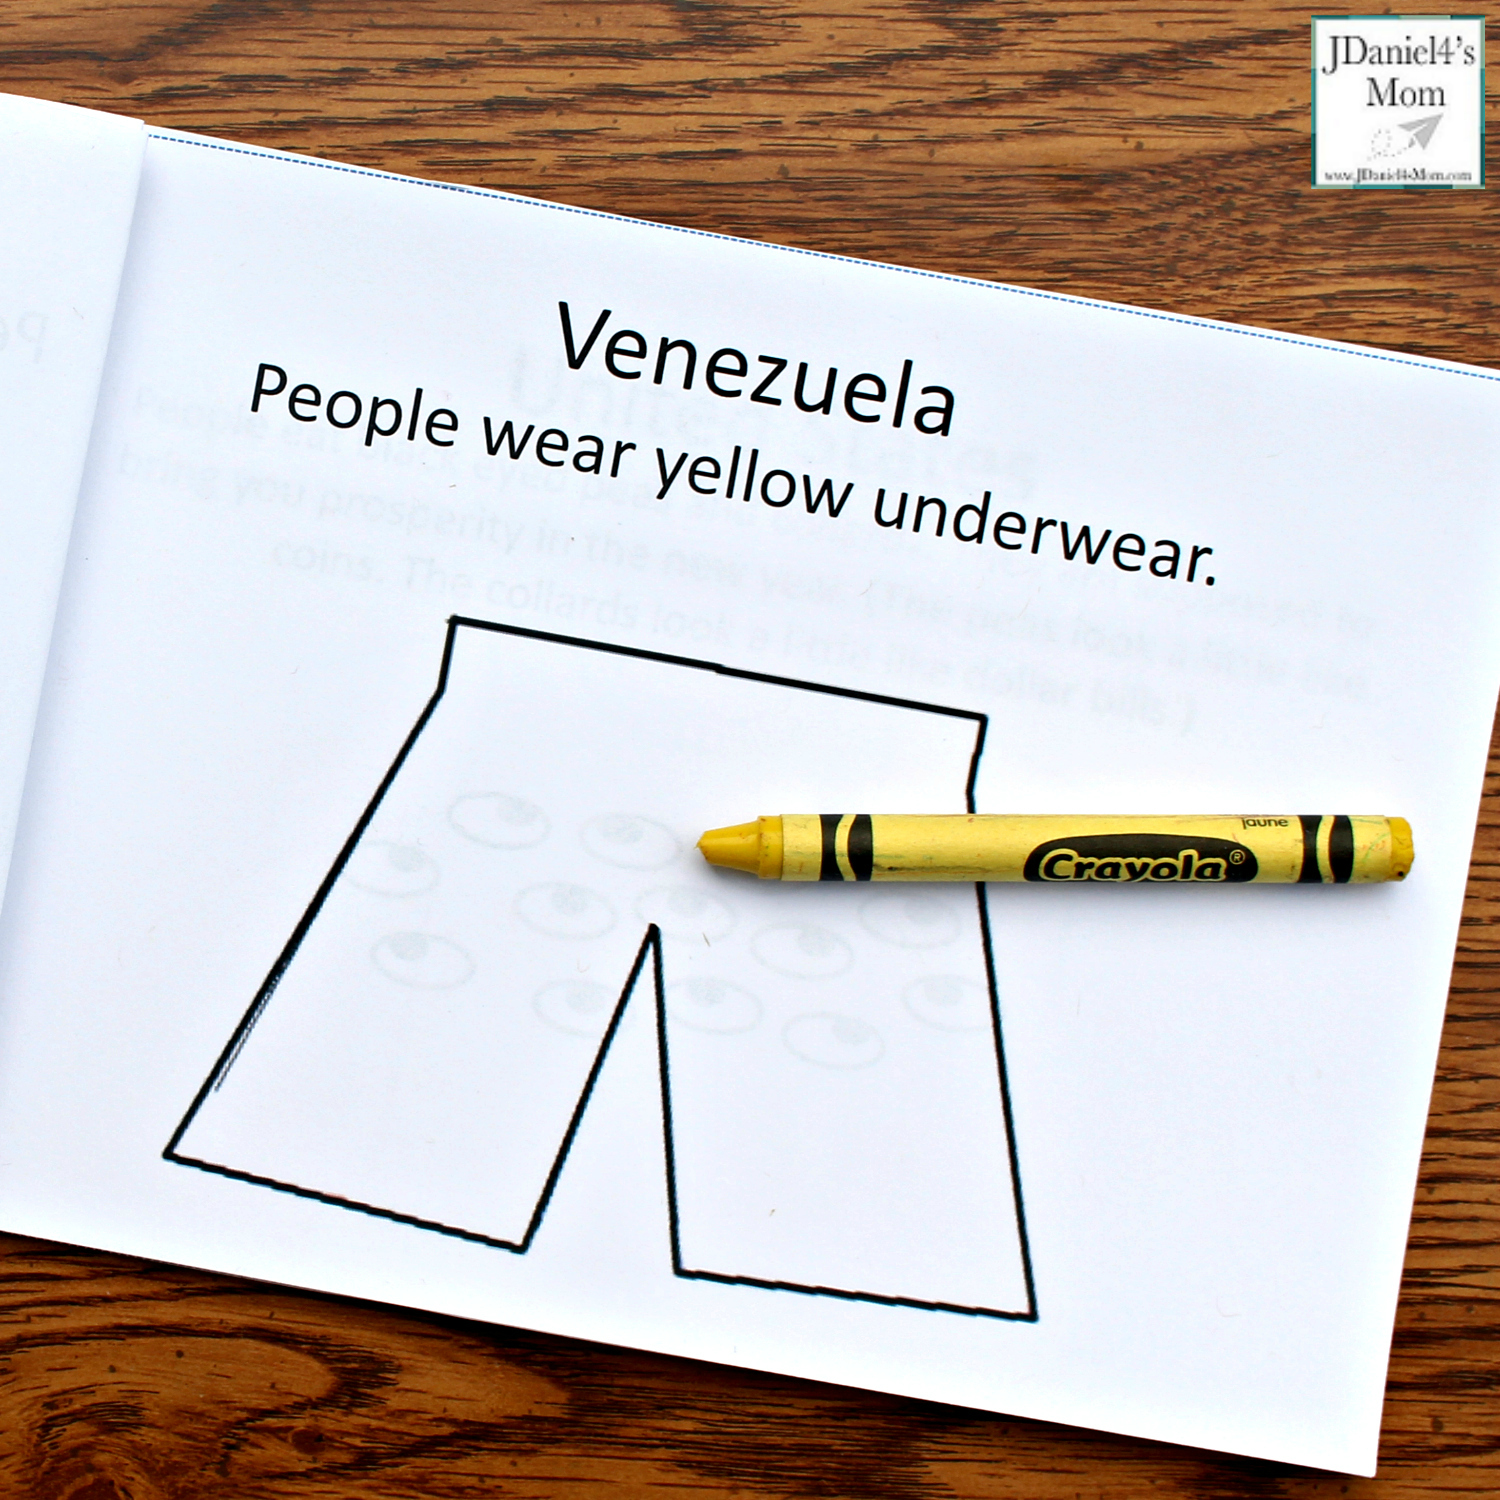 New Year's Traditions from Around the World Printable Book - Venezuela